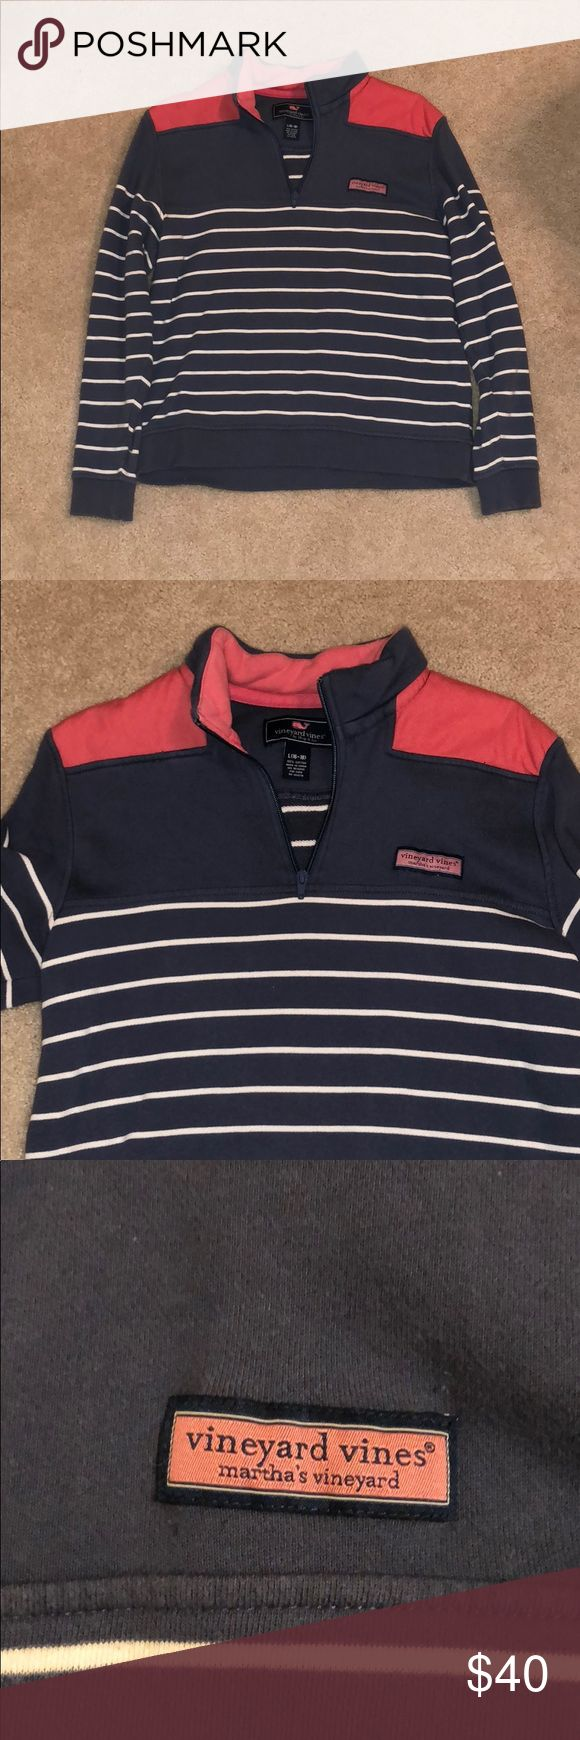 Vineyard Vine Shep Shirt Only worn a few times. Great condition. Bought at Martha's Vineyard Location in Edgartown. Kids L (16-18). Fits Adults who fit in S or M. Vineyard Vines Sweaters V-Necks